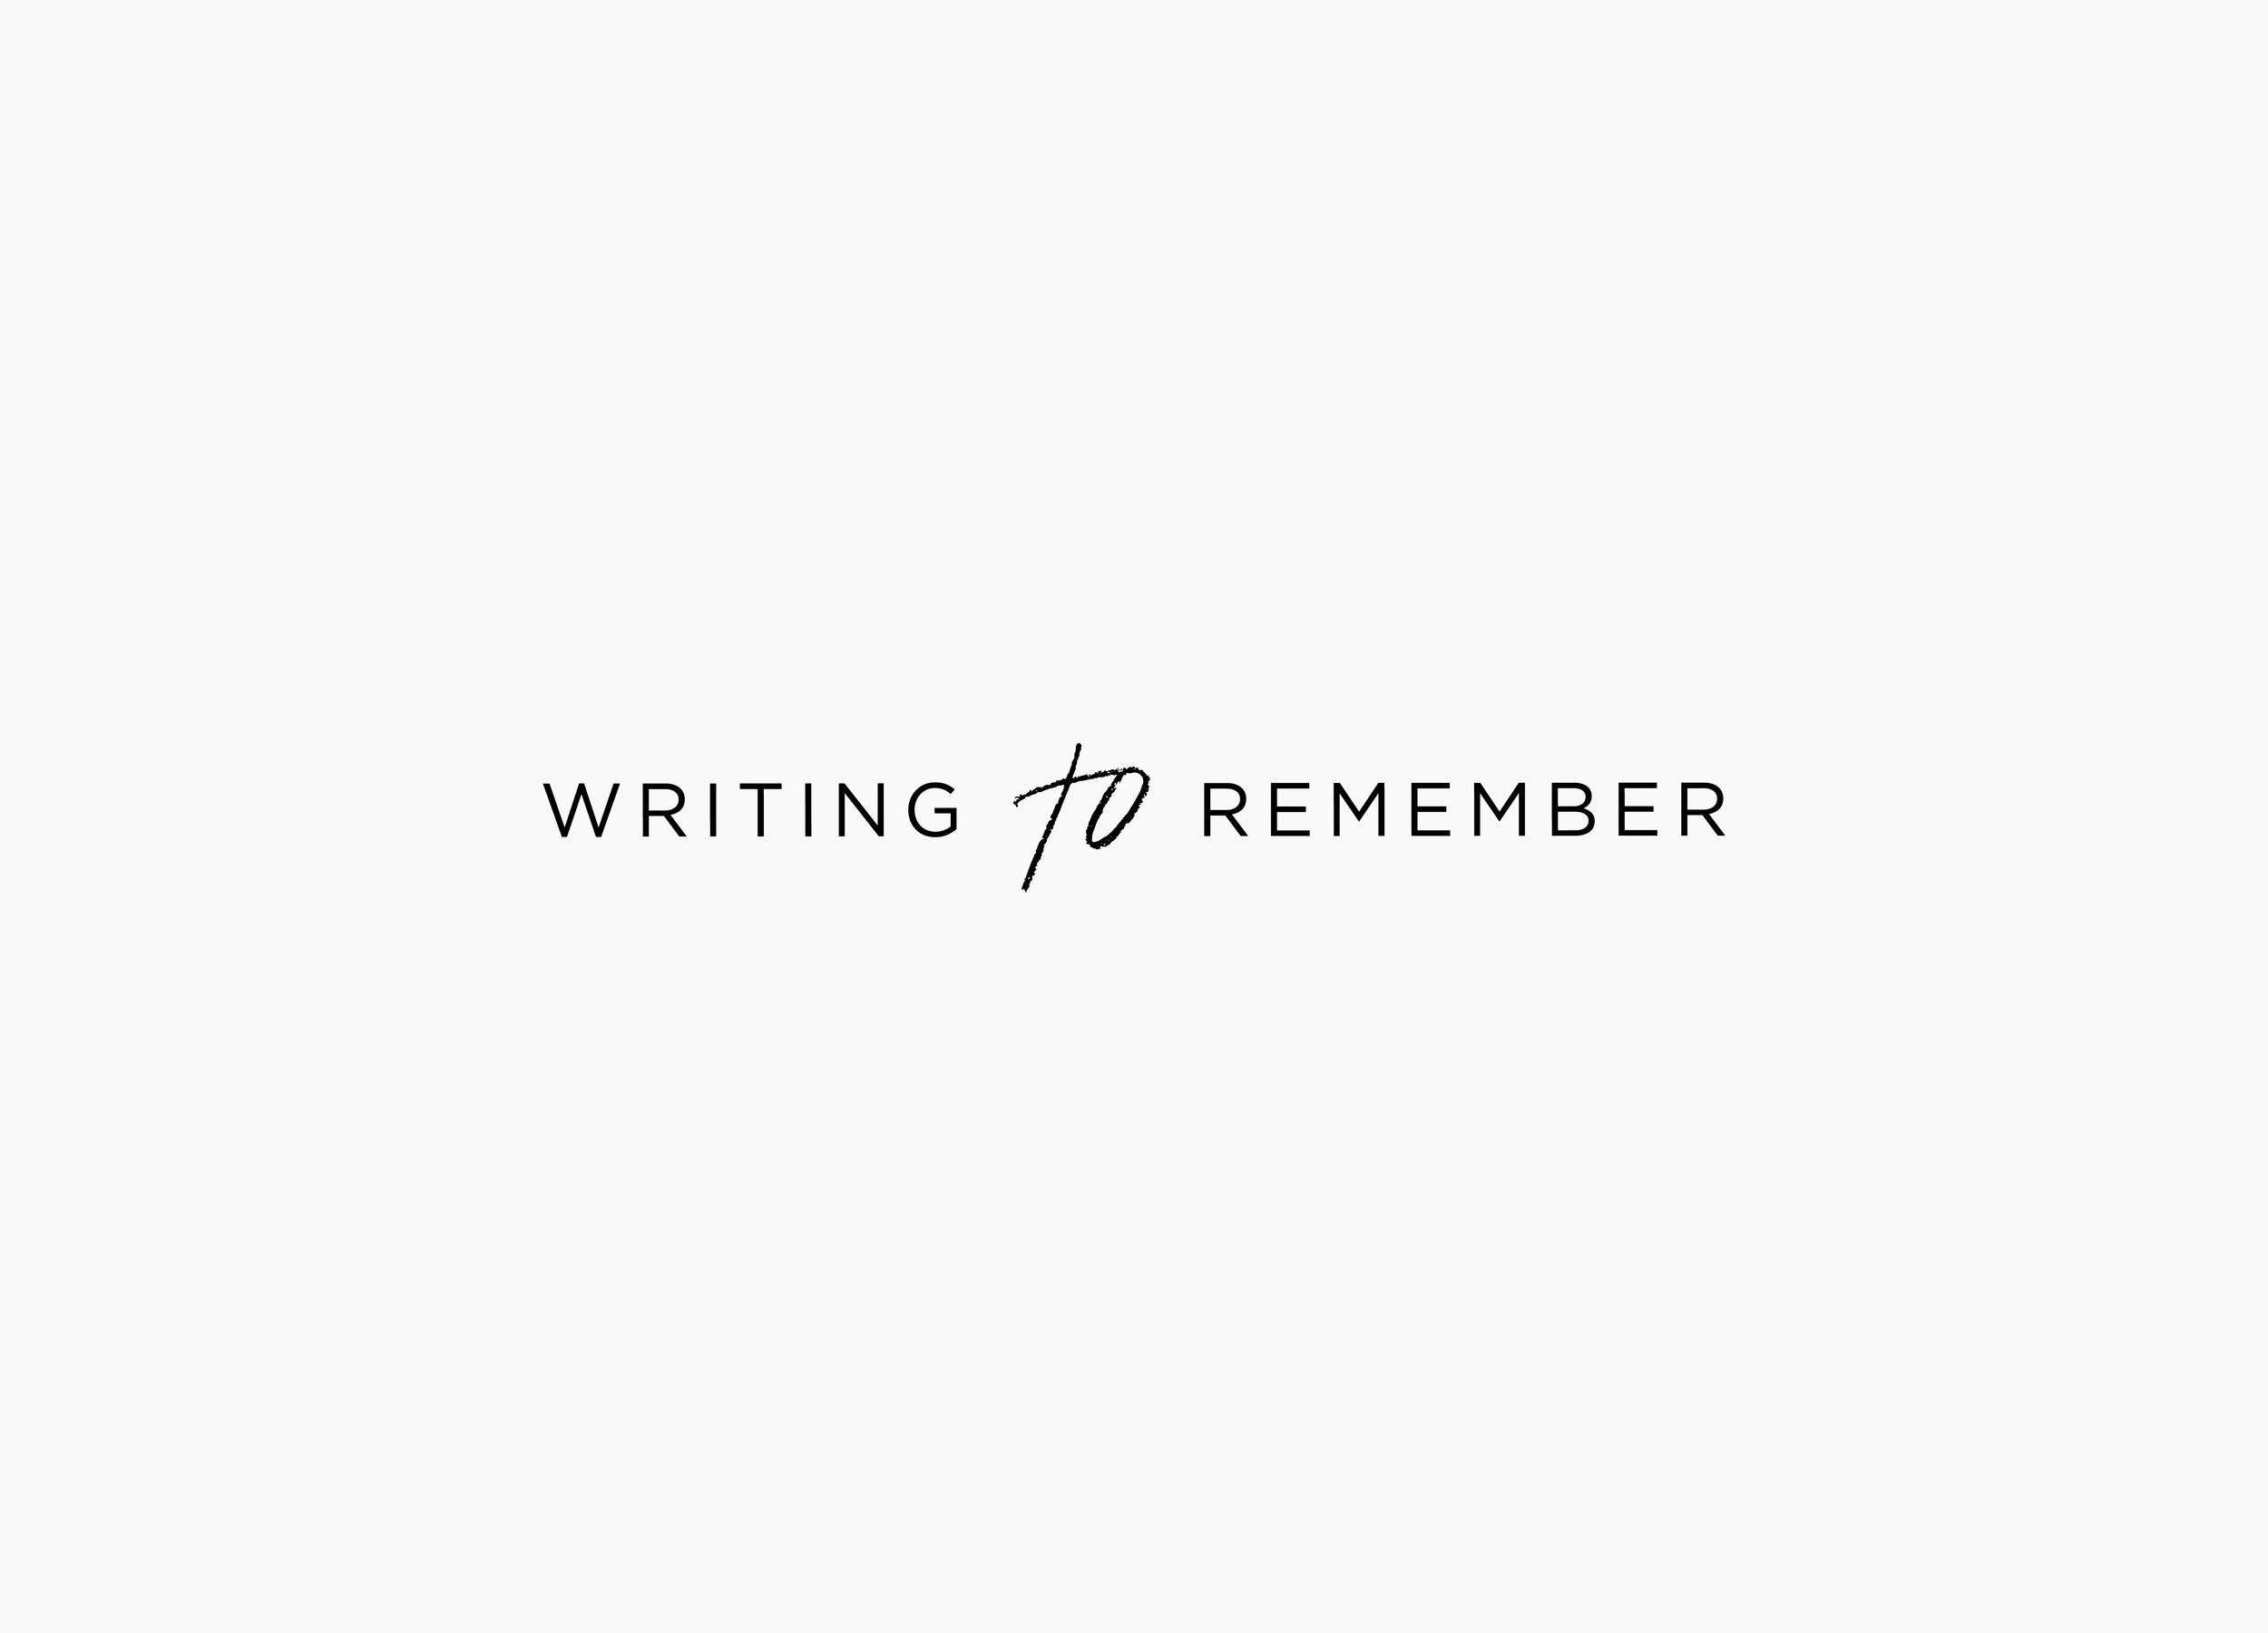 Writing to Remember / Letterform Creative